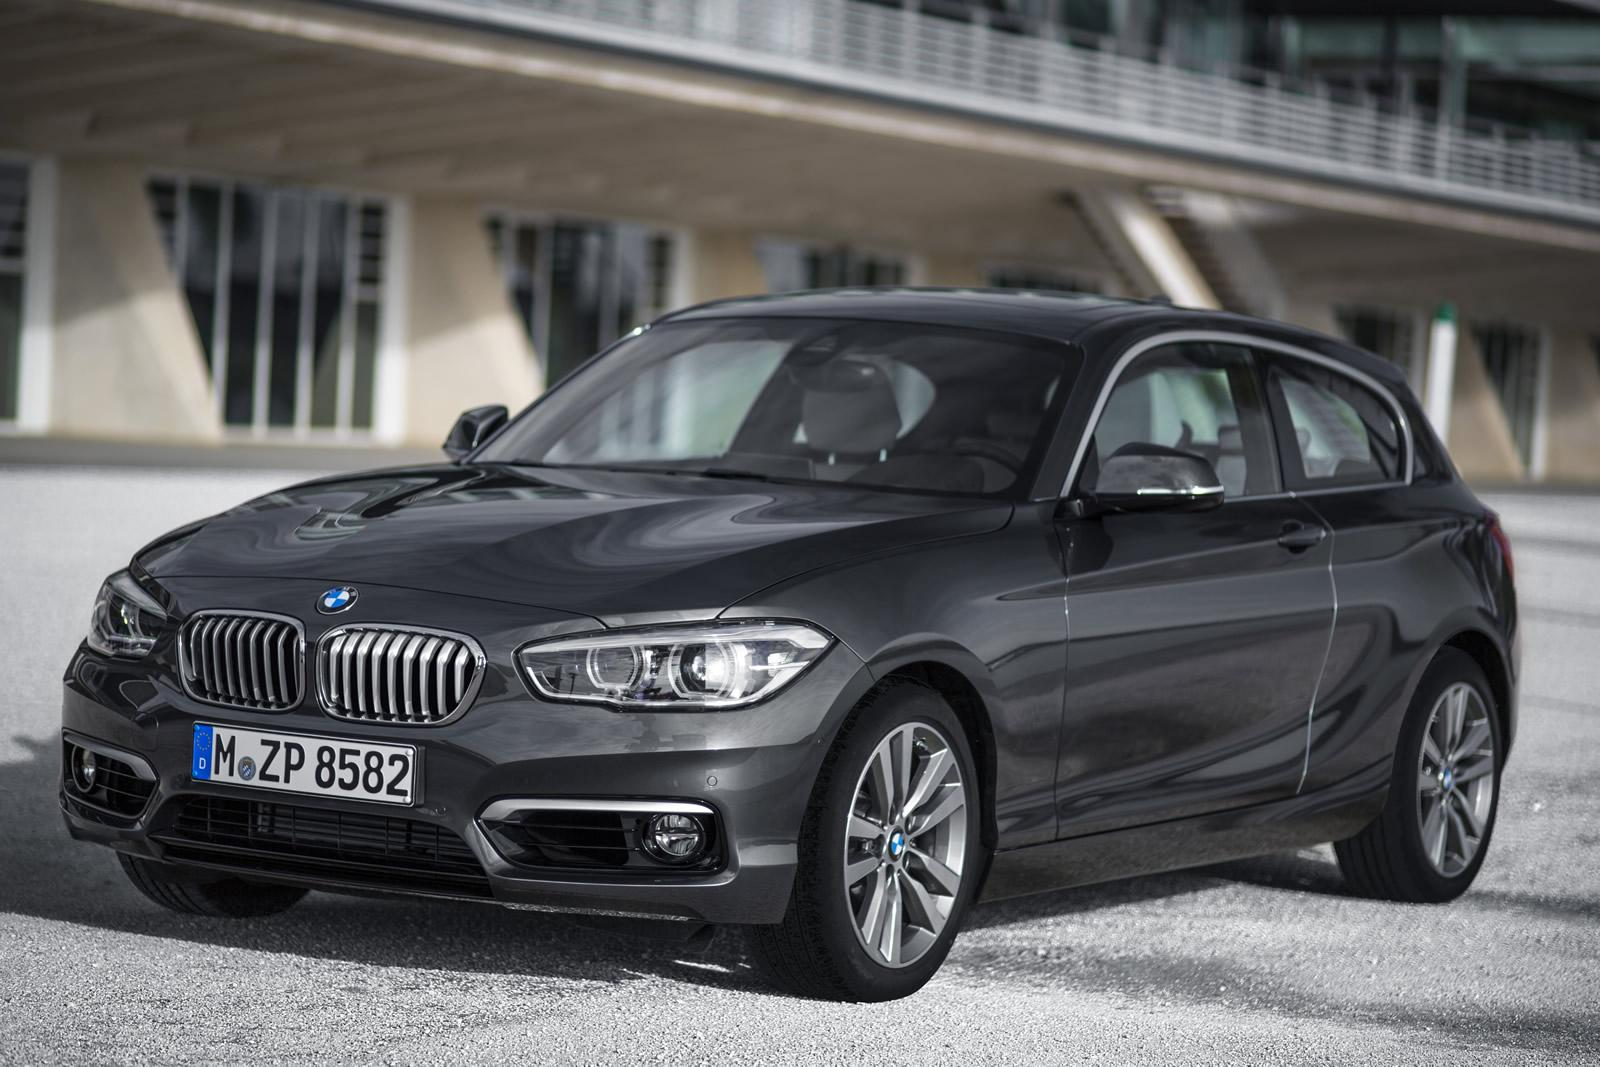 New BMW 1 Series Might Be The Kind Of A Hatchback You Have Been Waiting For